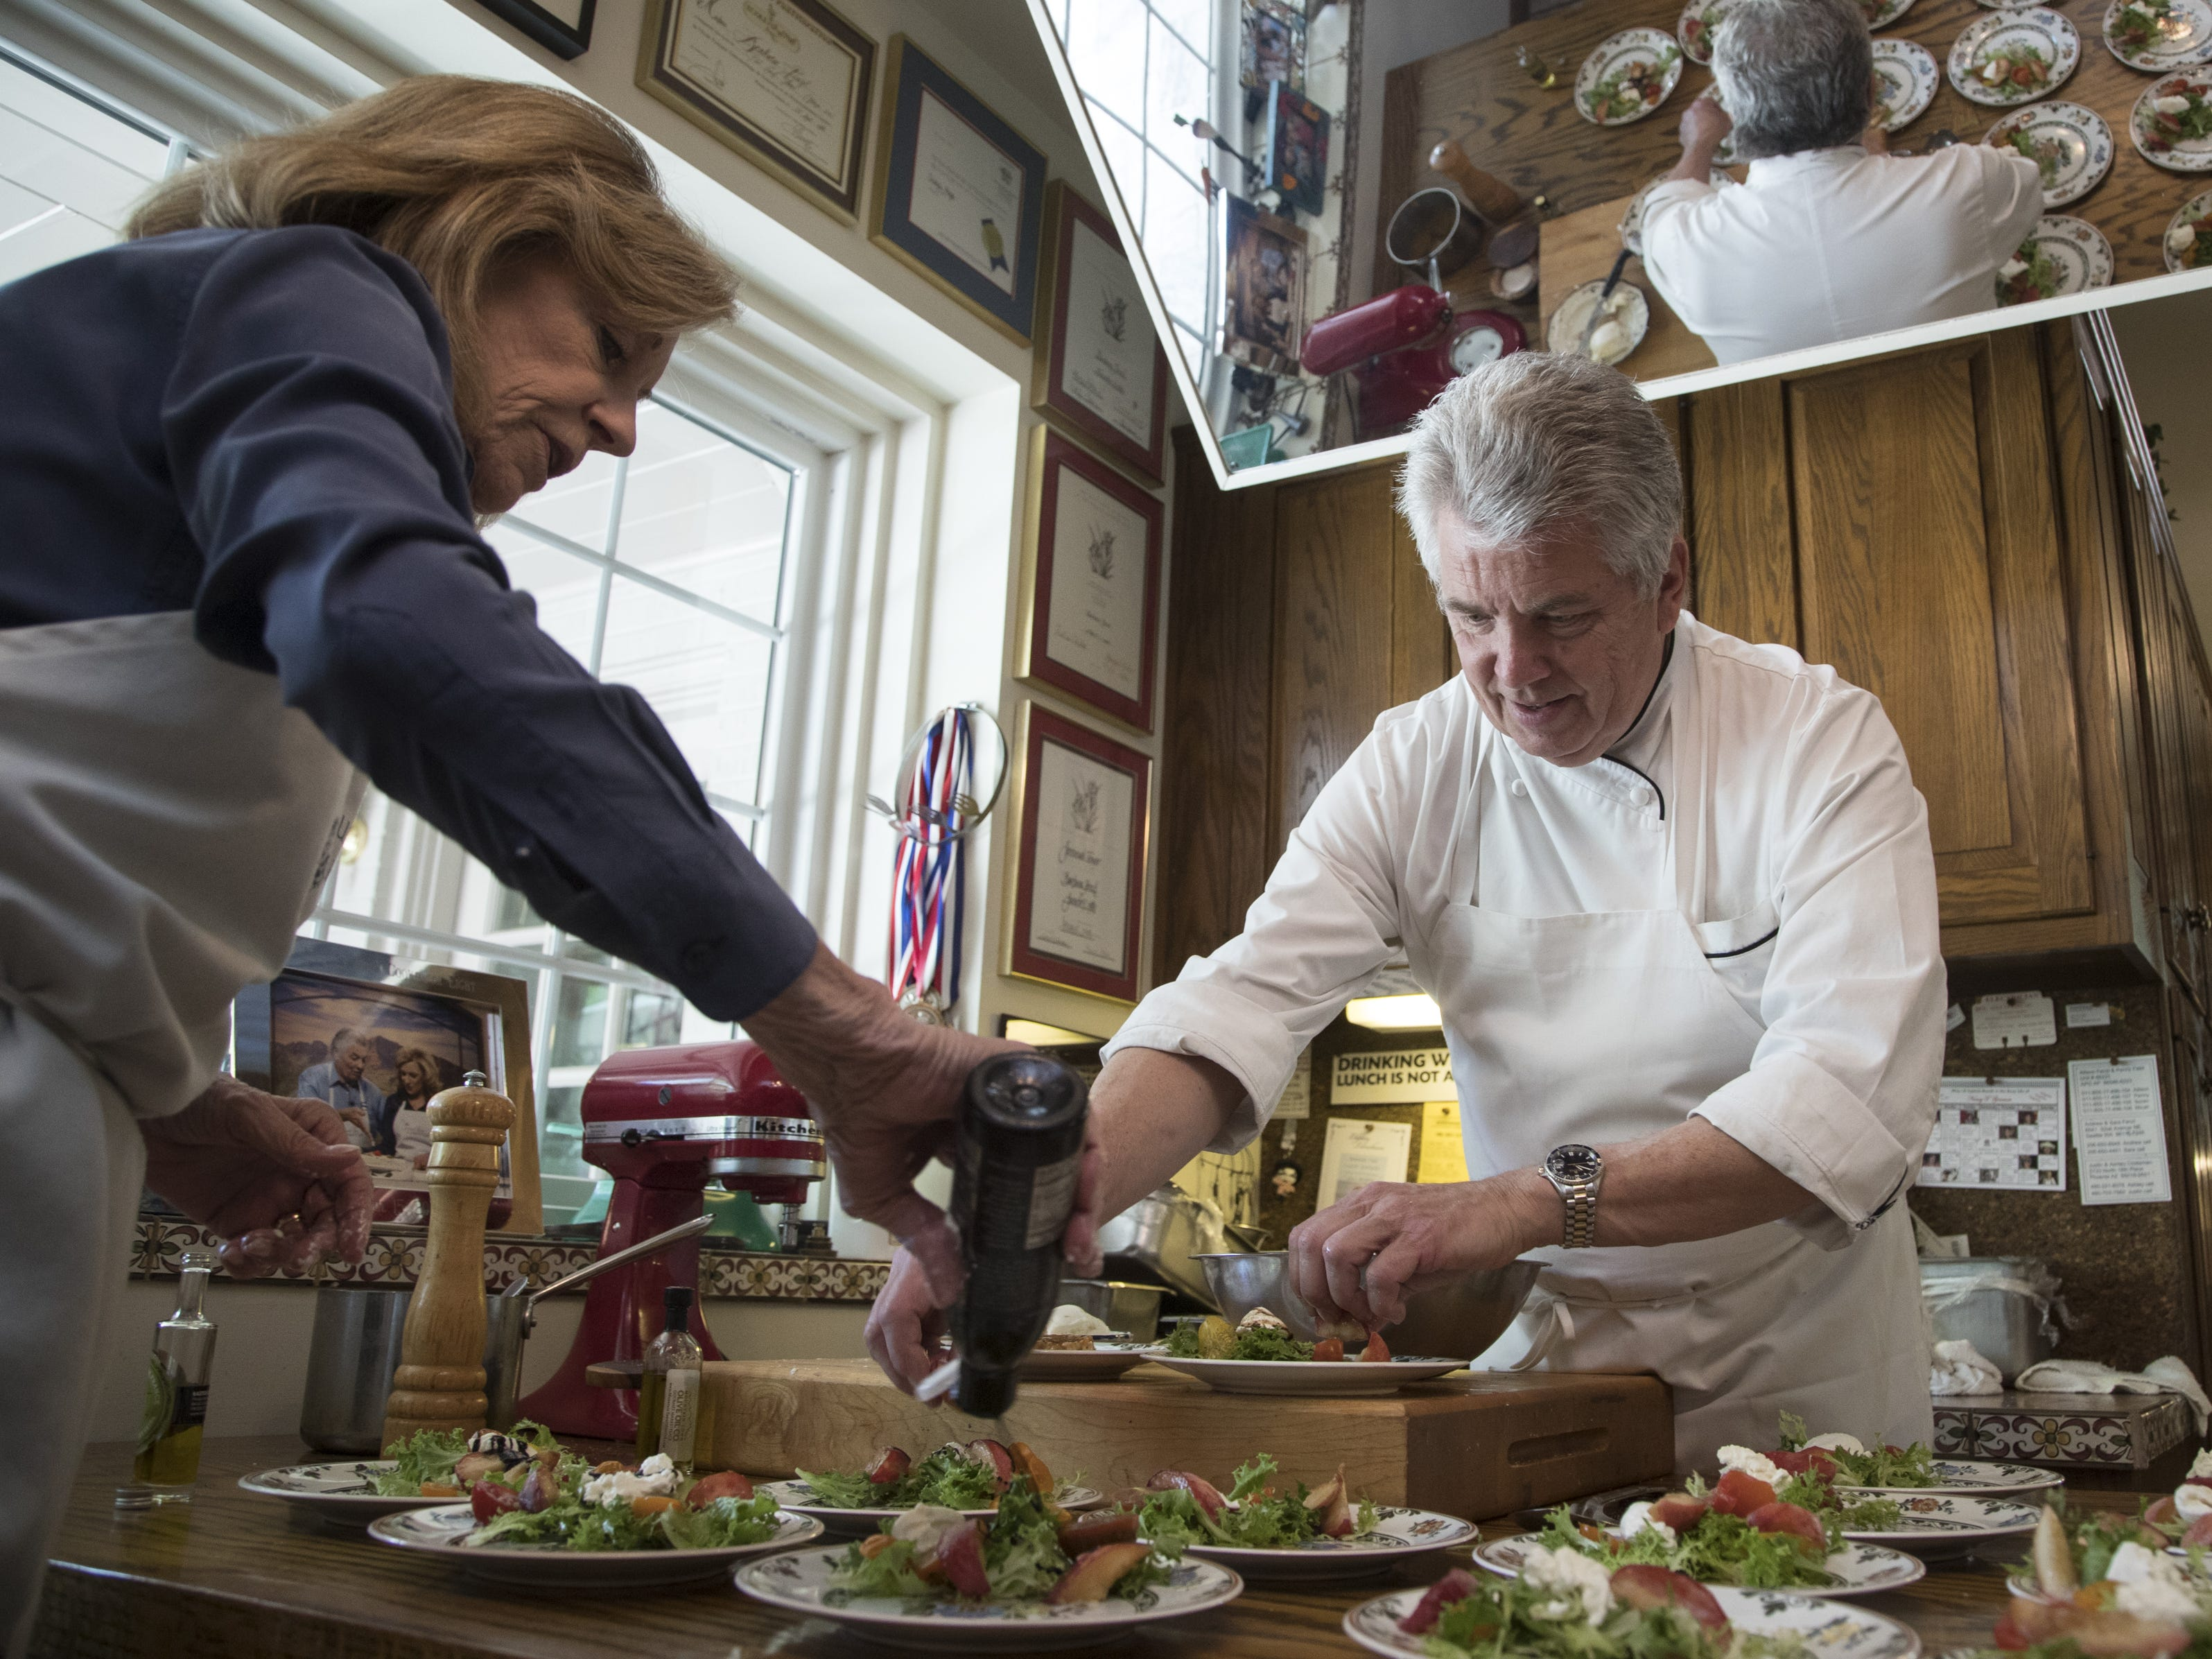 Barbara Fenzl (left) and chef Vincent Guerithault make salads during a cooking class, May 7, 2019, at Les Gourmettes Cooking School, 6610 N. Central Ave., Phoenix.